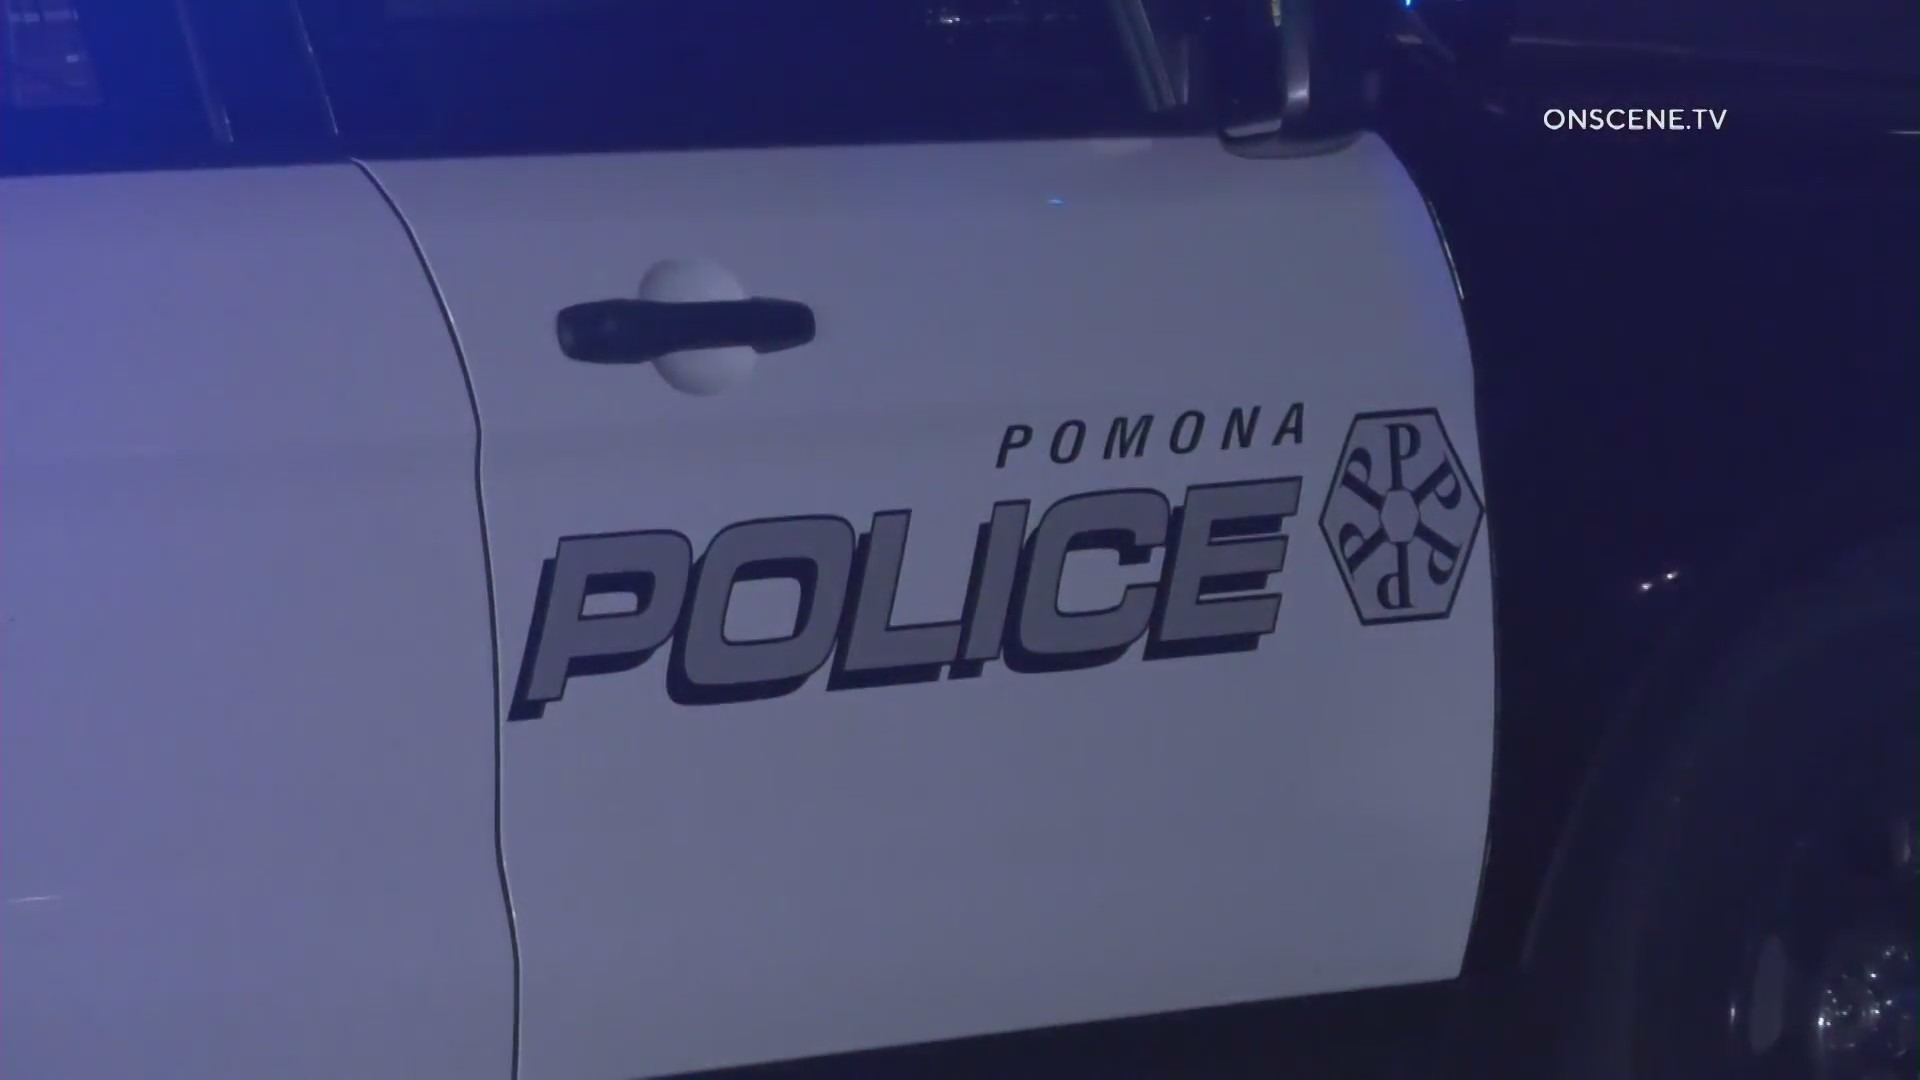 Pomona police are looking for more information on a fatal hit-and-run that occurred early in the morning of July 24, 2021. (KTLA)